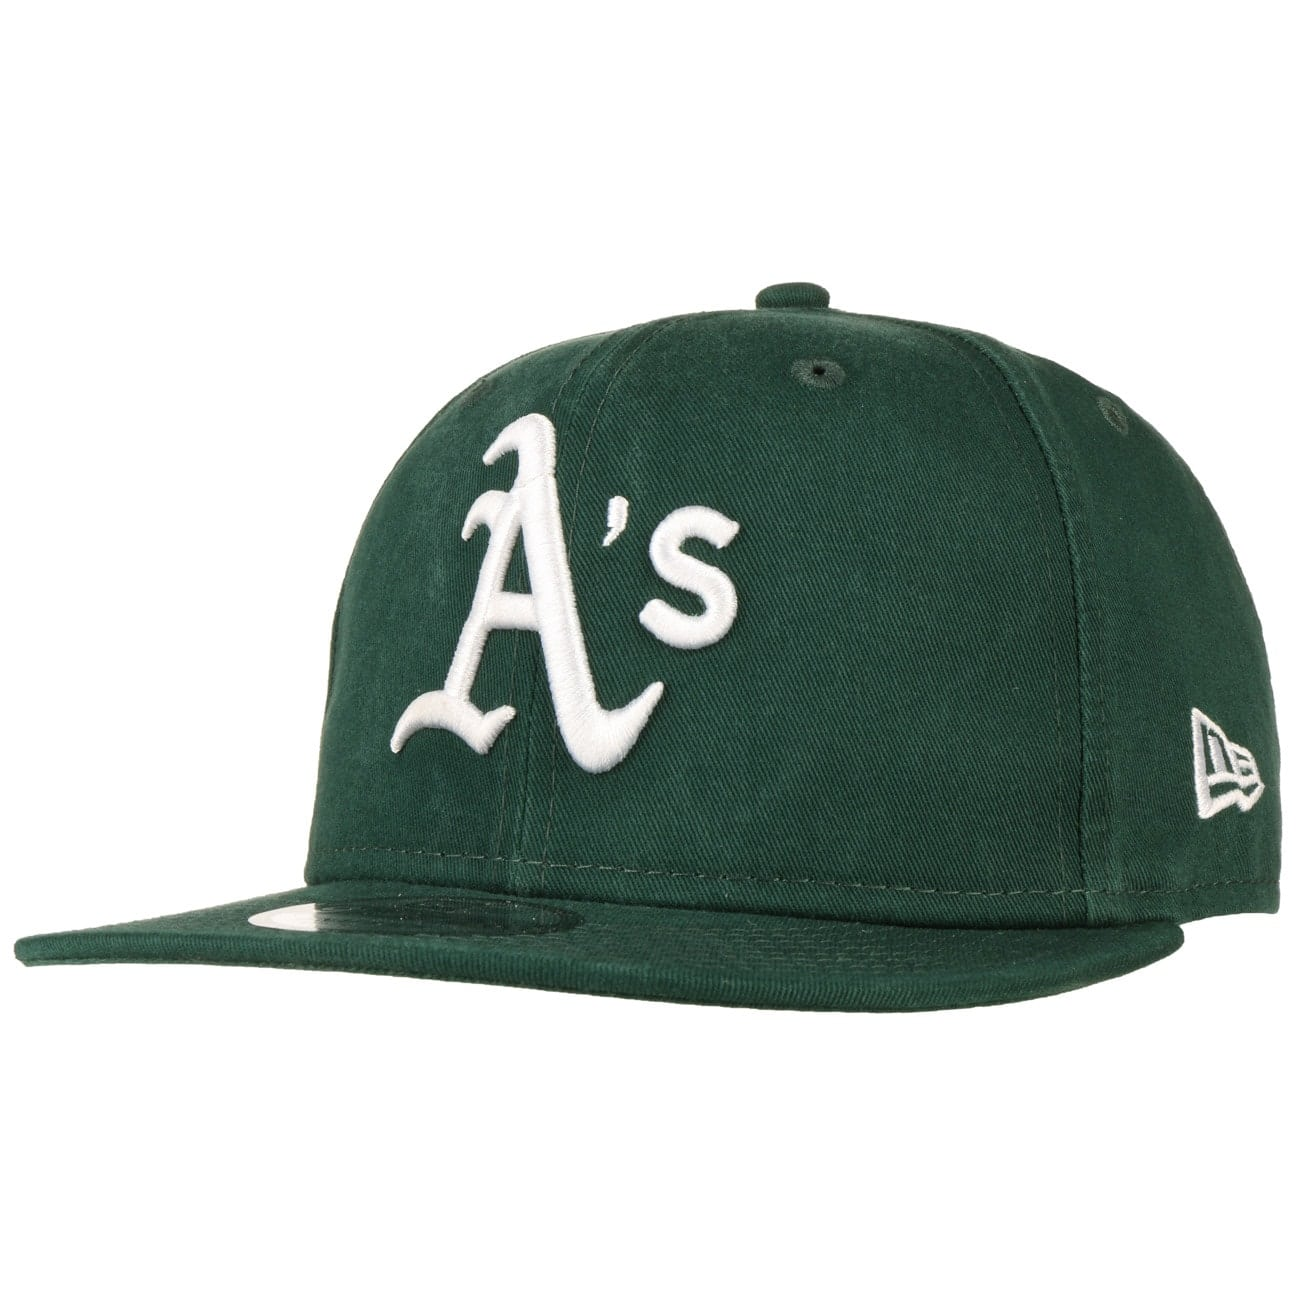 9fifty-washed-athletics-cap-by-new-era-basecap